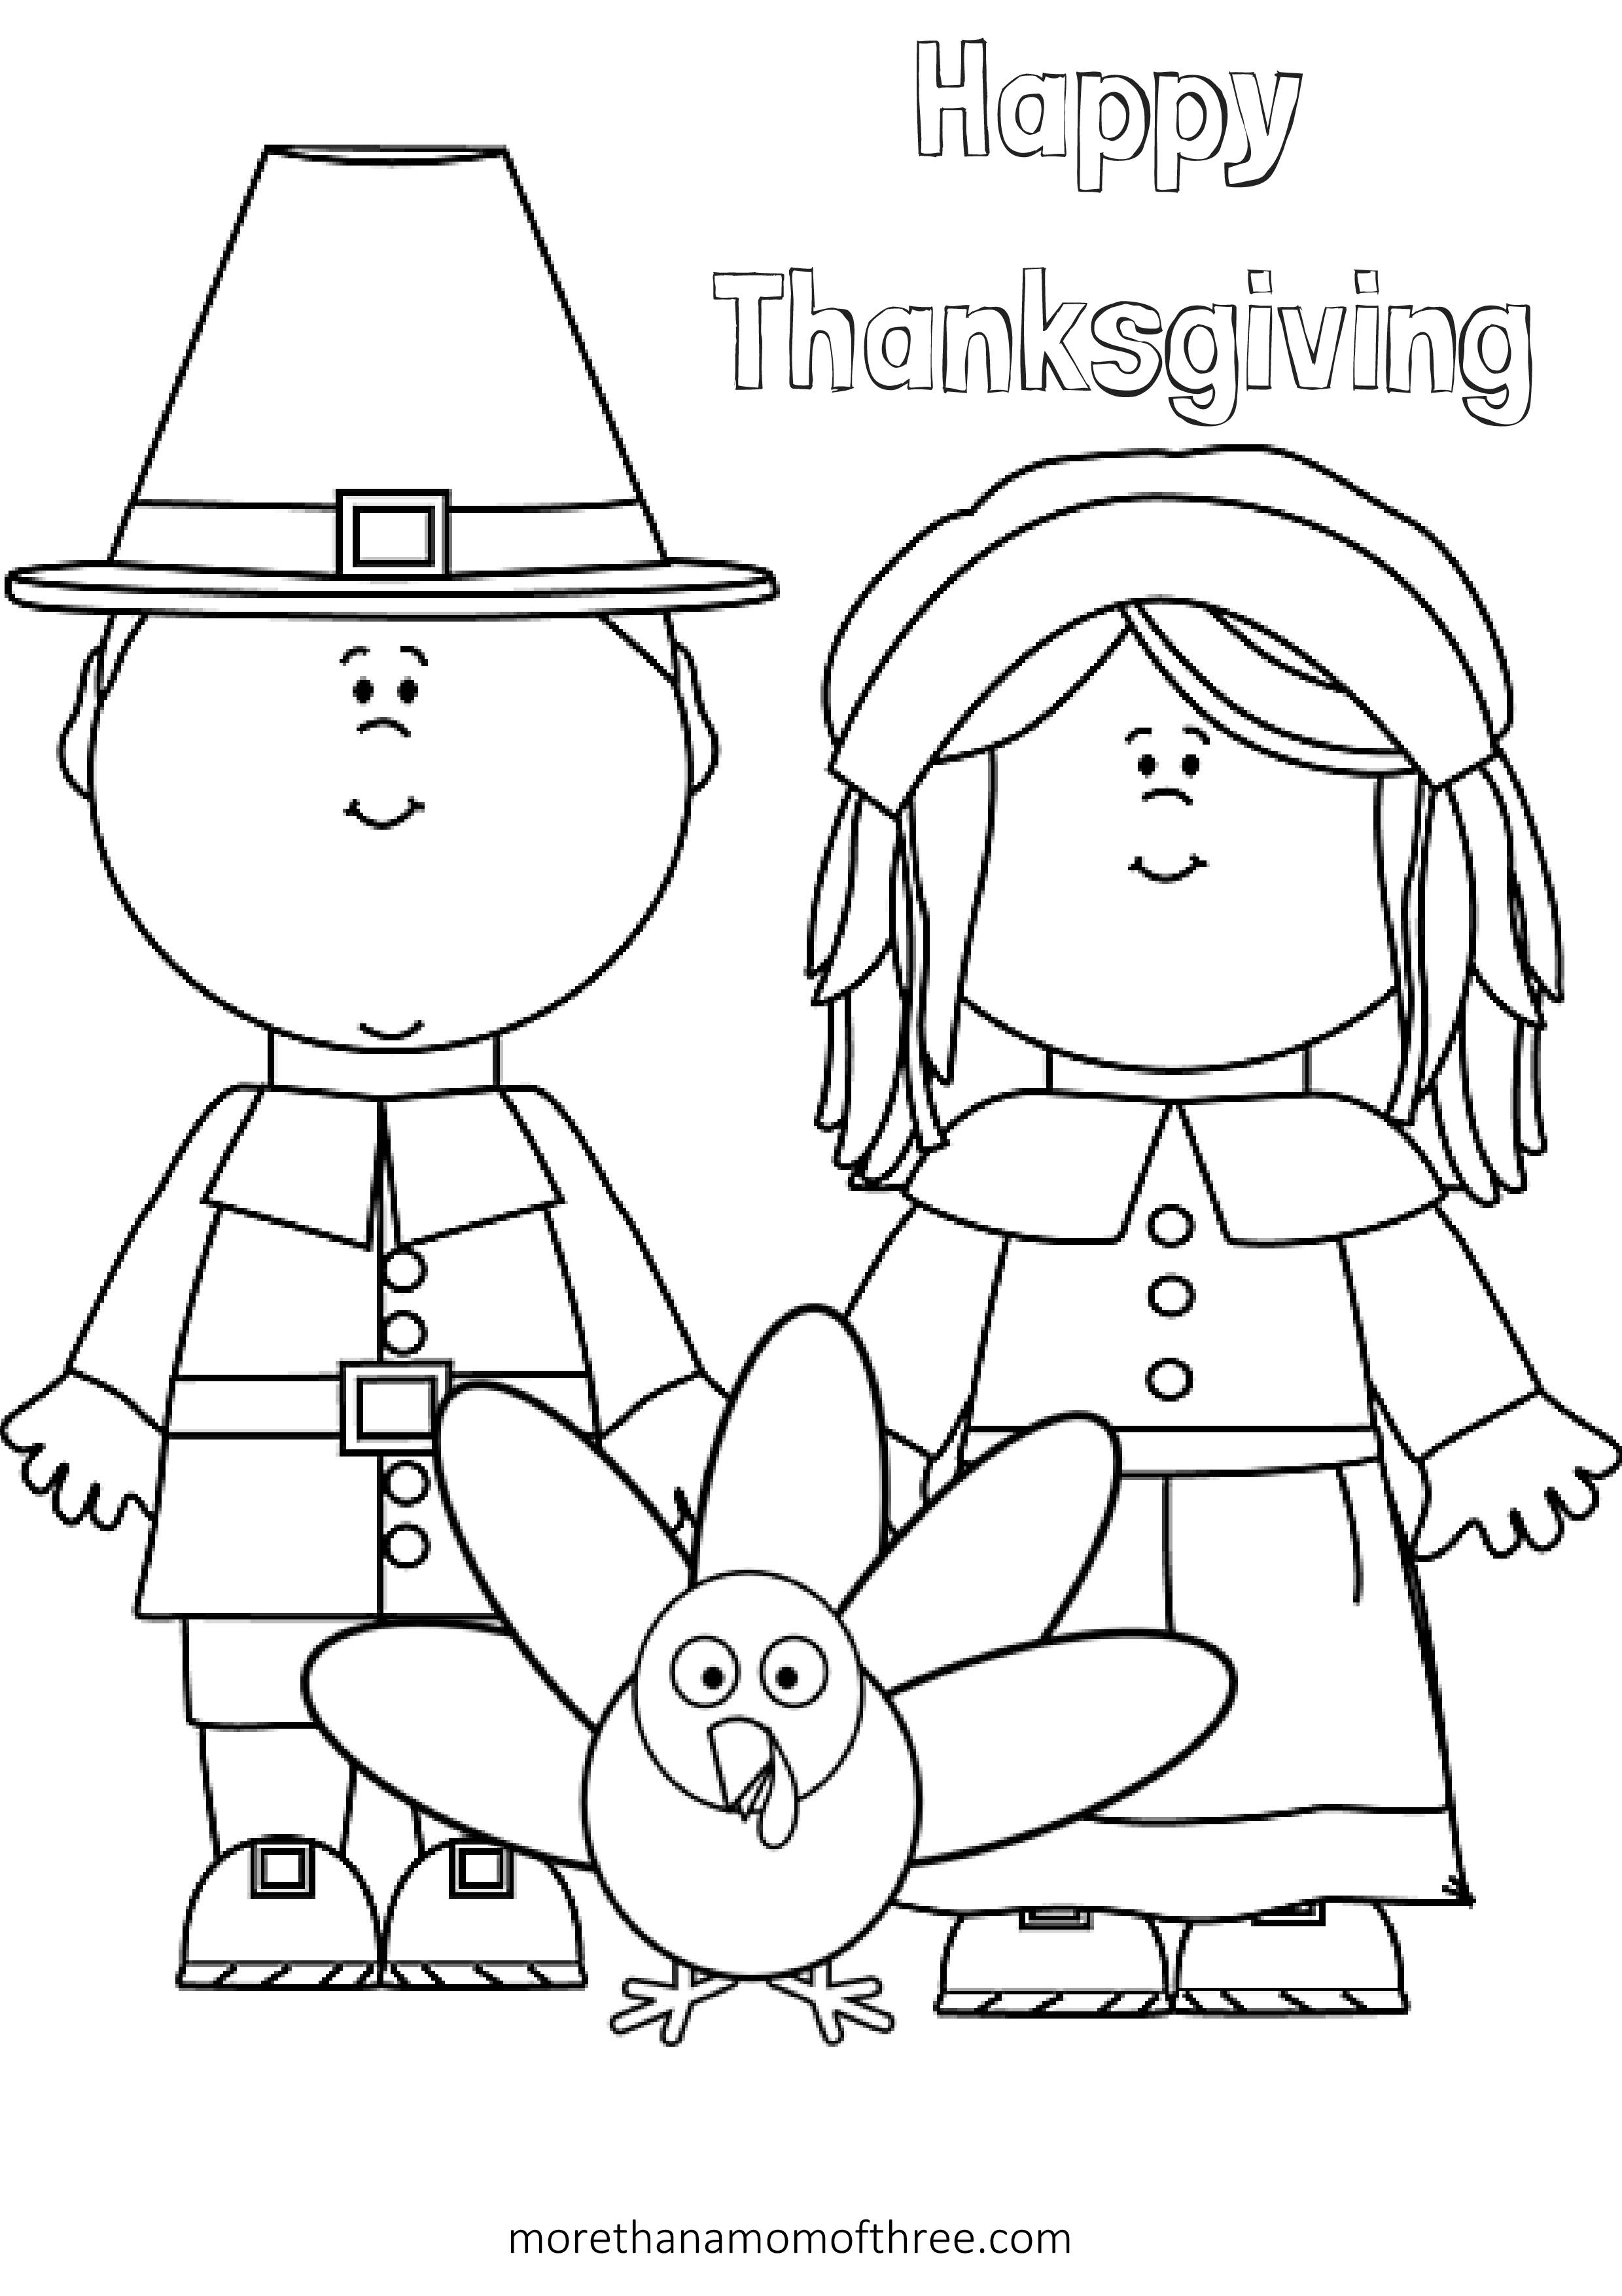 2479x3509 Happy Thanksgiving Coloring Pages To Download And Print For Free